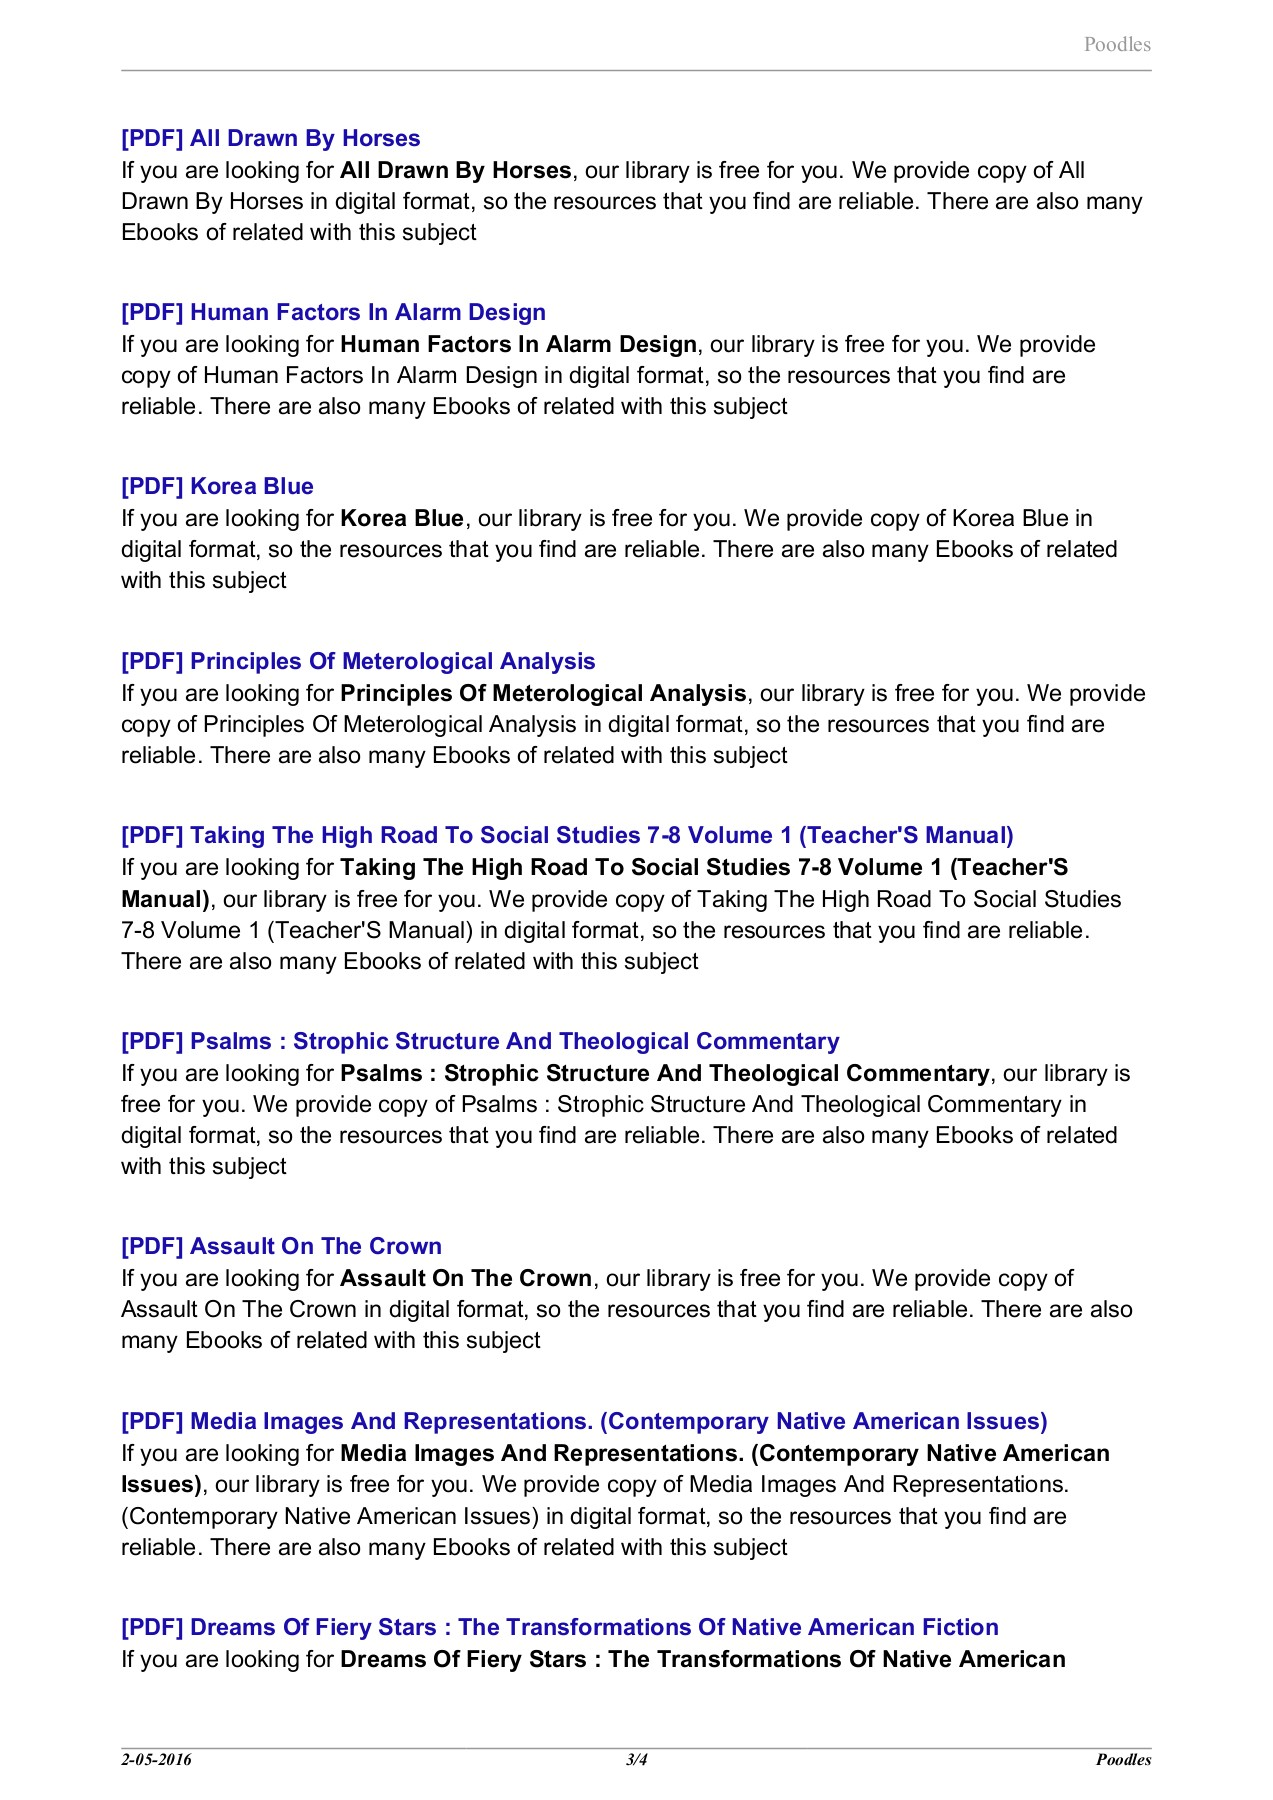 Poodles - bookkeepsubstantial top Pages 1 - 4 - Text Version | AnyFlip